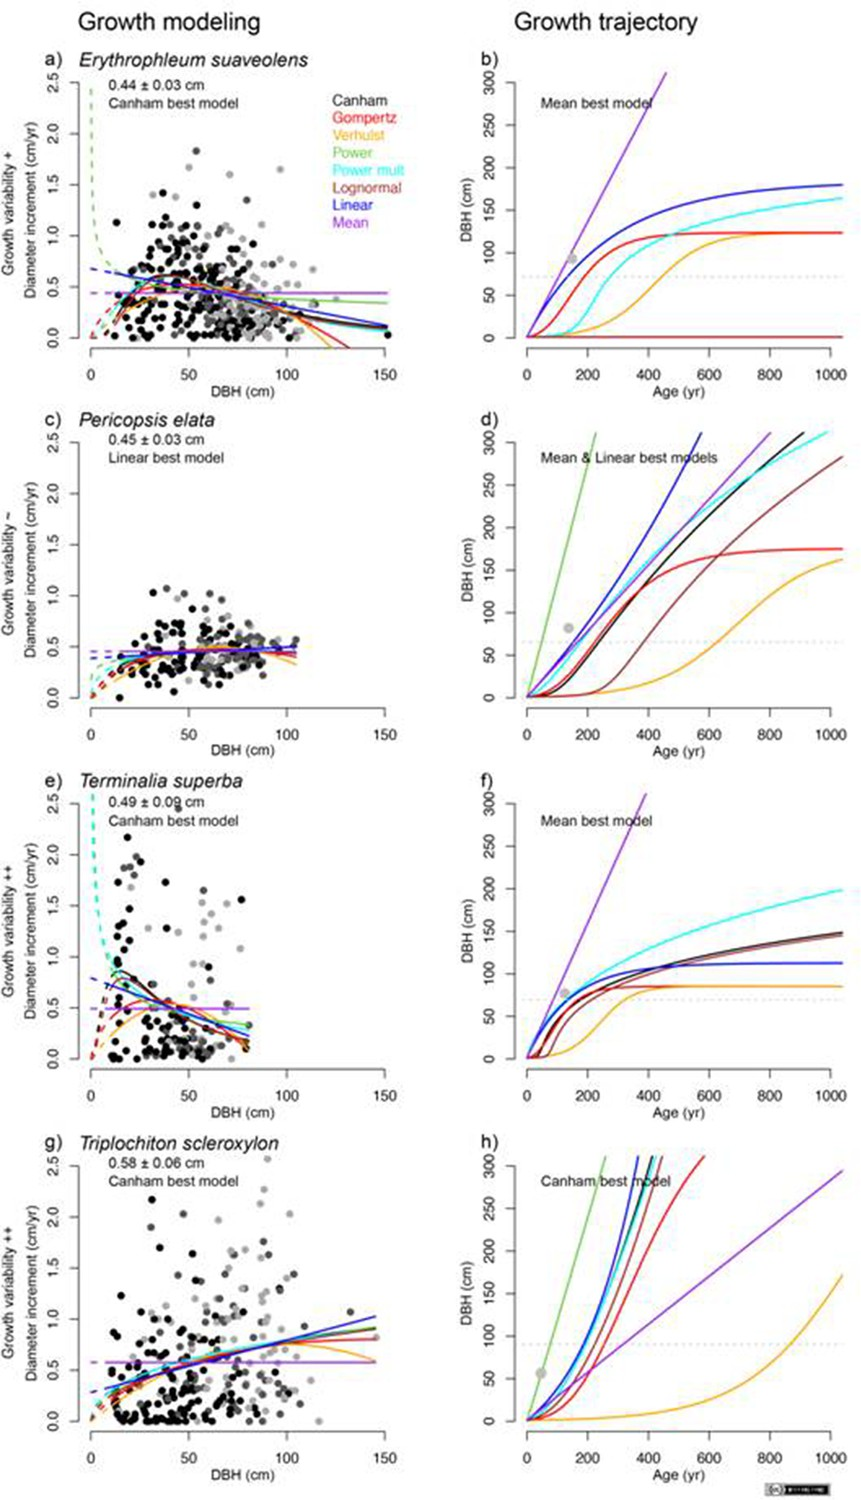 Present Day Central African Forest Is A Legacy Of The 19th Century Thinning Tree Ring Diagram Growth Models C E And G Trajectories B D F H For Four Study Species Based On Data